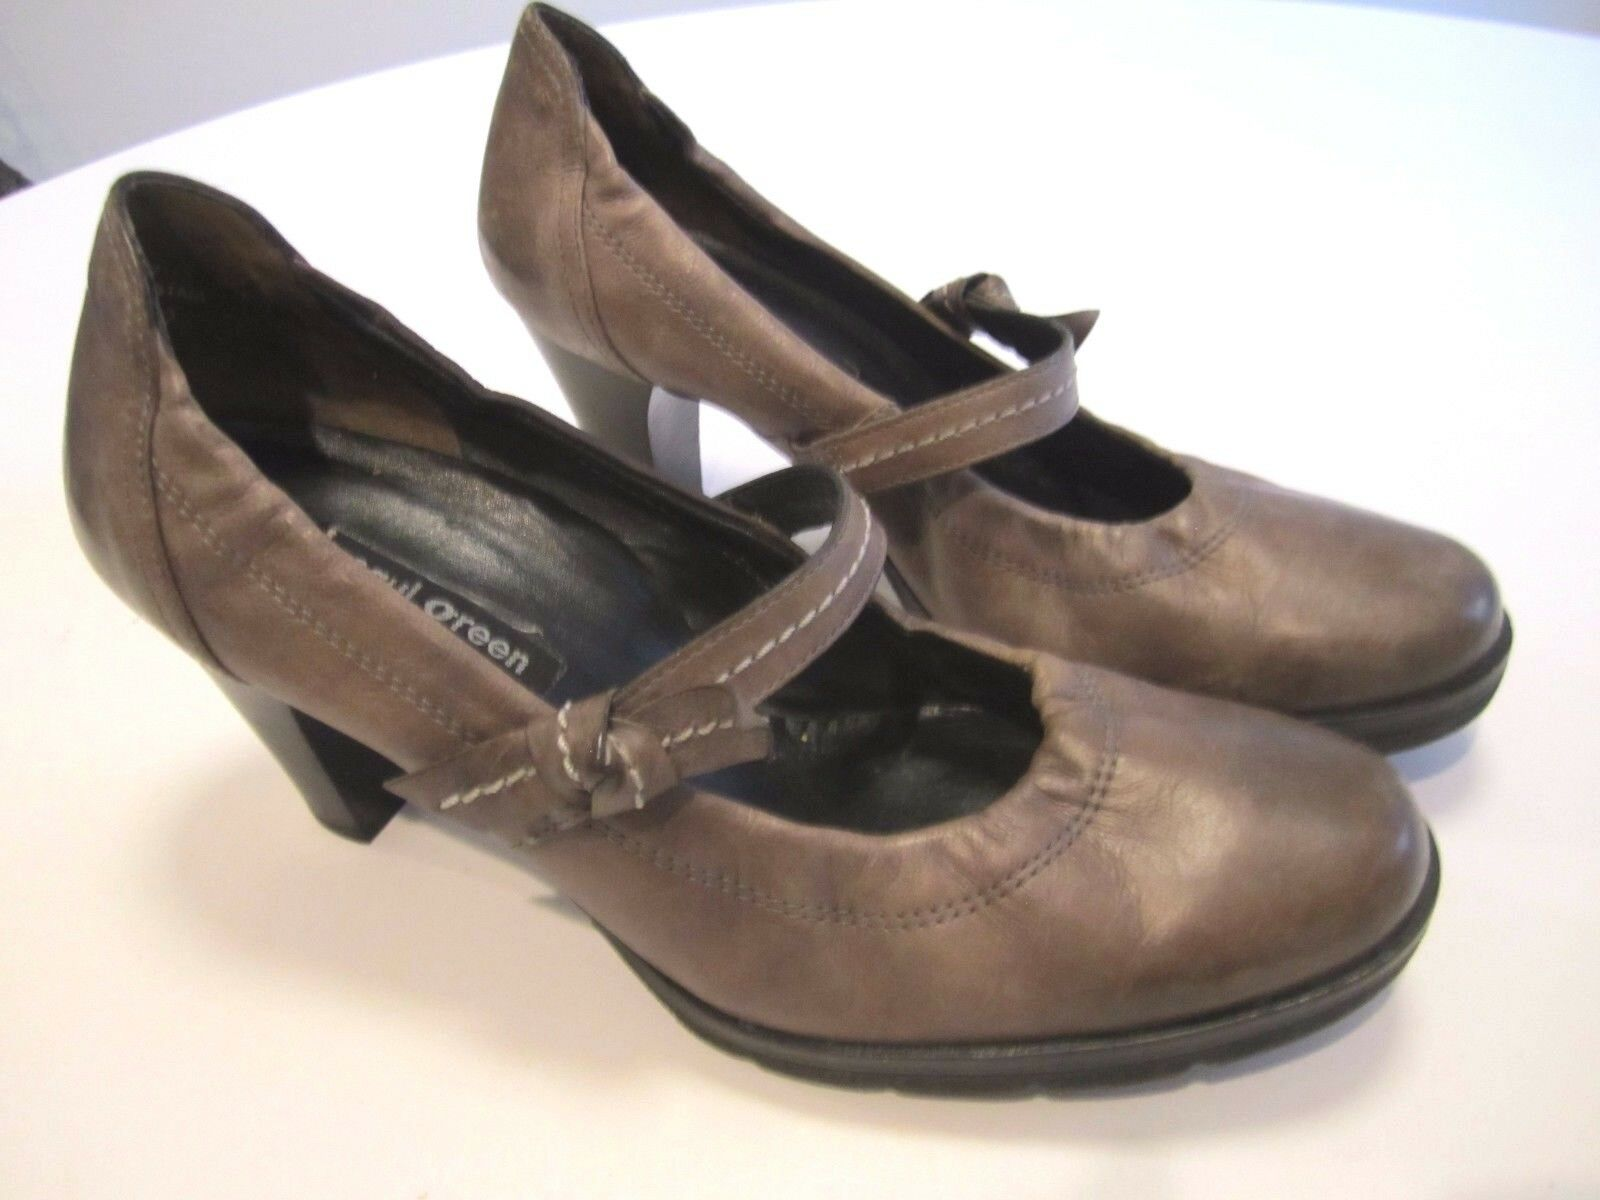 GRAY Austria 5 US7.5 EU 38 PAUL GREEN DAHLIA STACKED HEEL MARY JANE pump +BOX